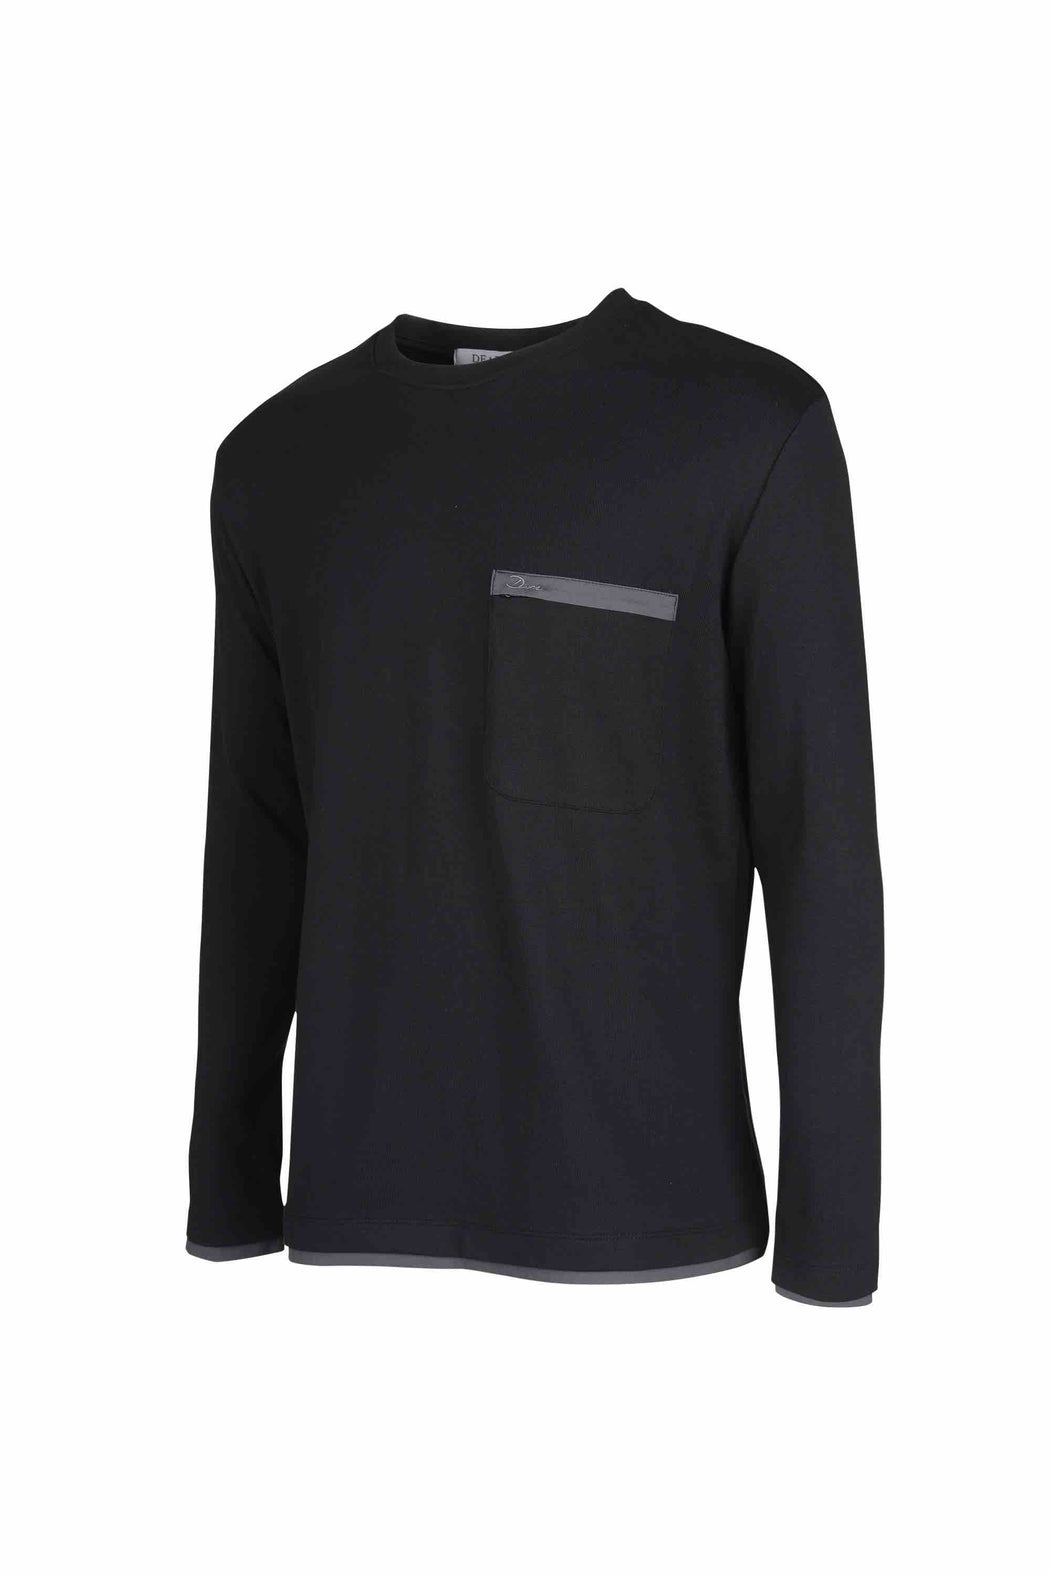 Side view of Men Back Print Long Sleeve T-Shirt made with Organic Cotton in Black